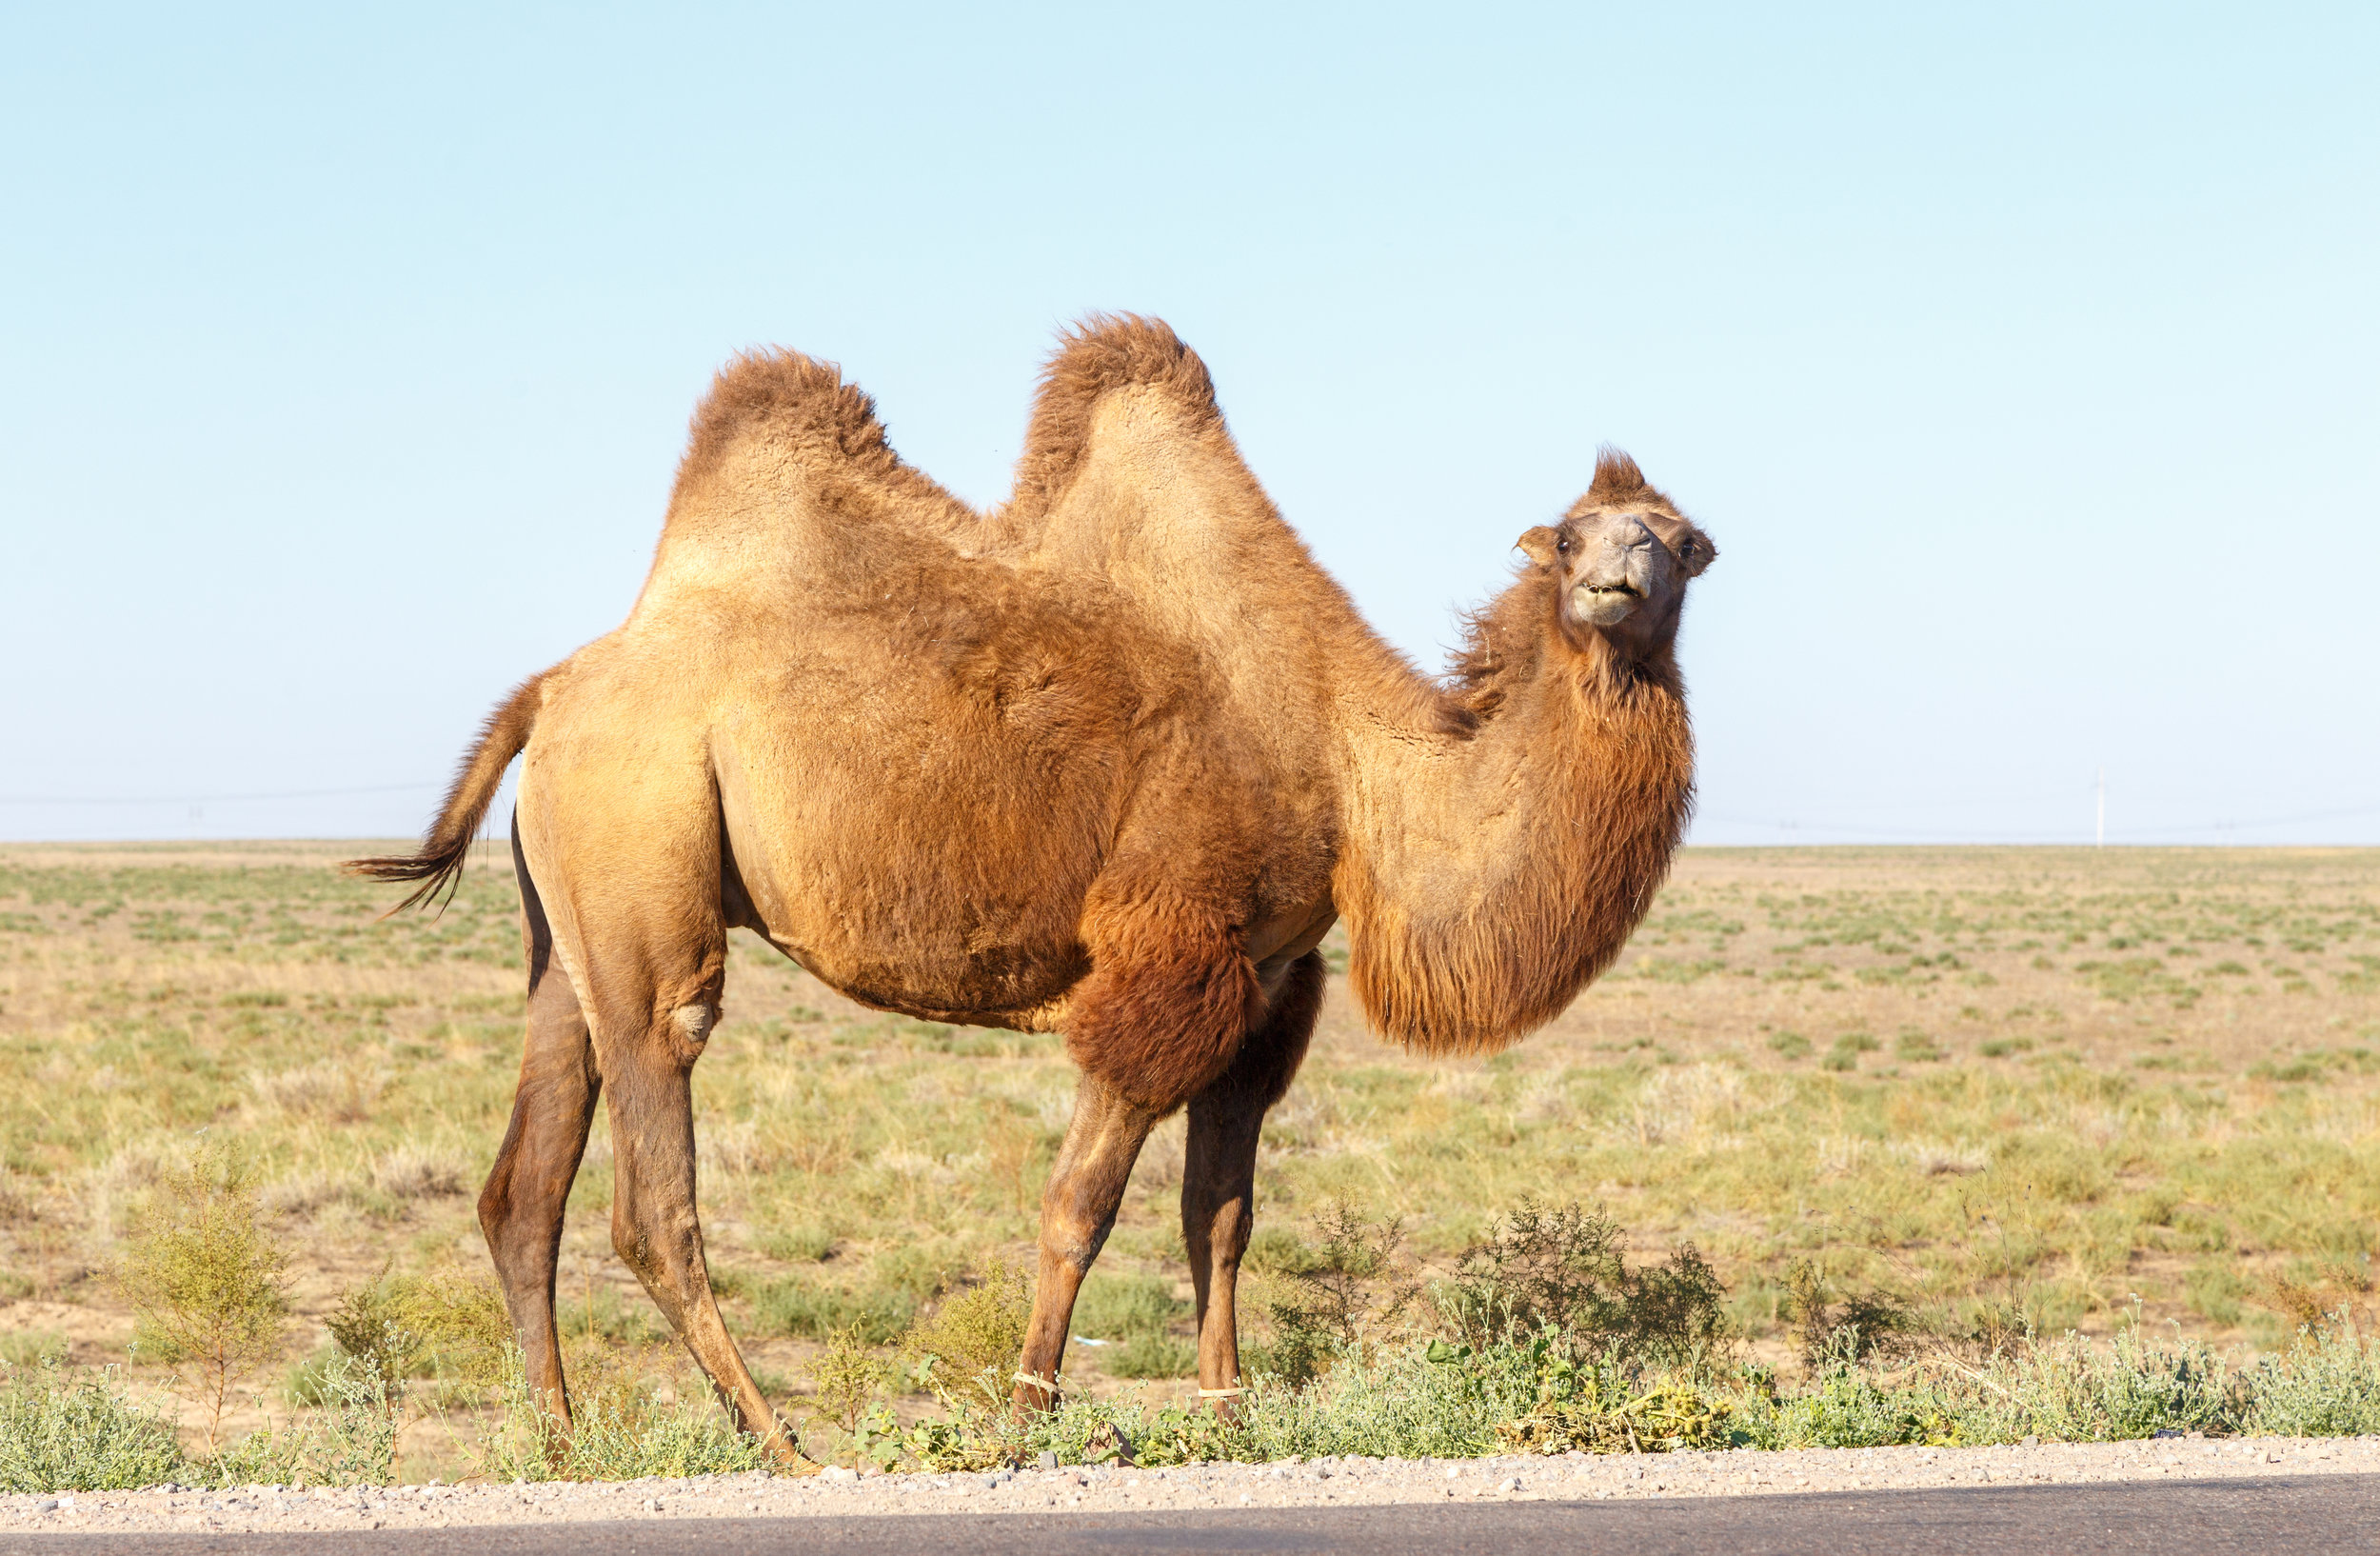 Camels have adapted to live in the dry desert.